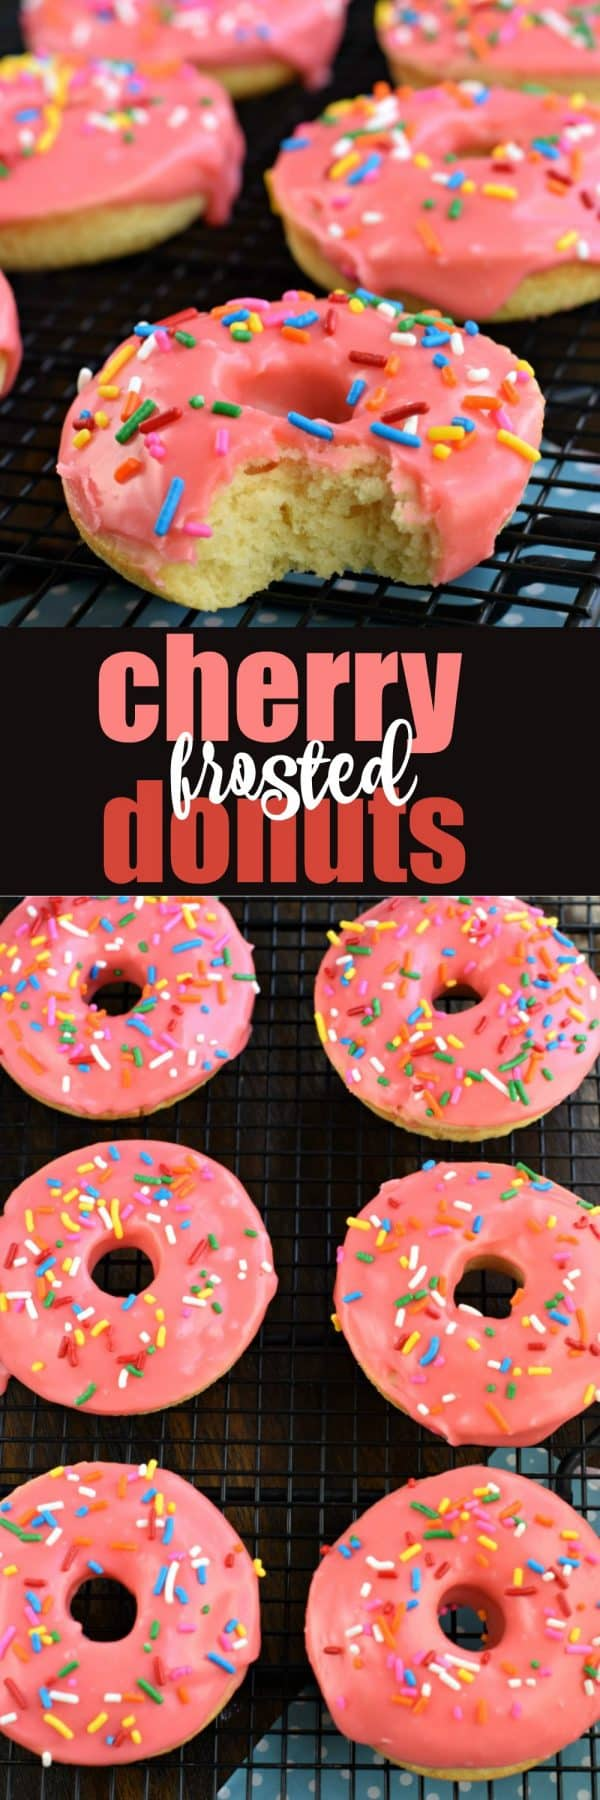 These Cherry Frosted Donuts have a tender, moist cake-like texture with a dreamy cherry frosting! Perfect for holidays, Valentine's Day, or general breakfast enjoyment. #doughnuts #donut #cherry #breakfast